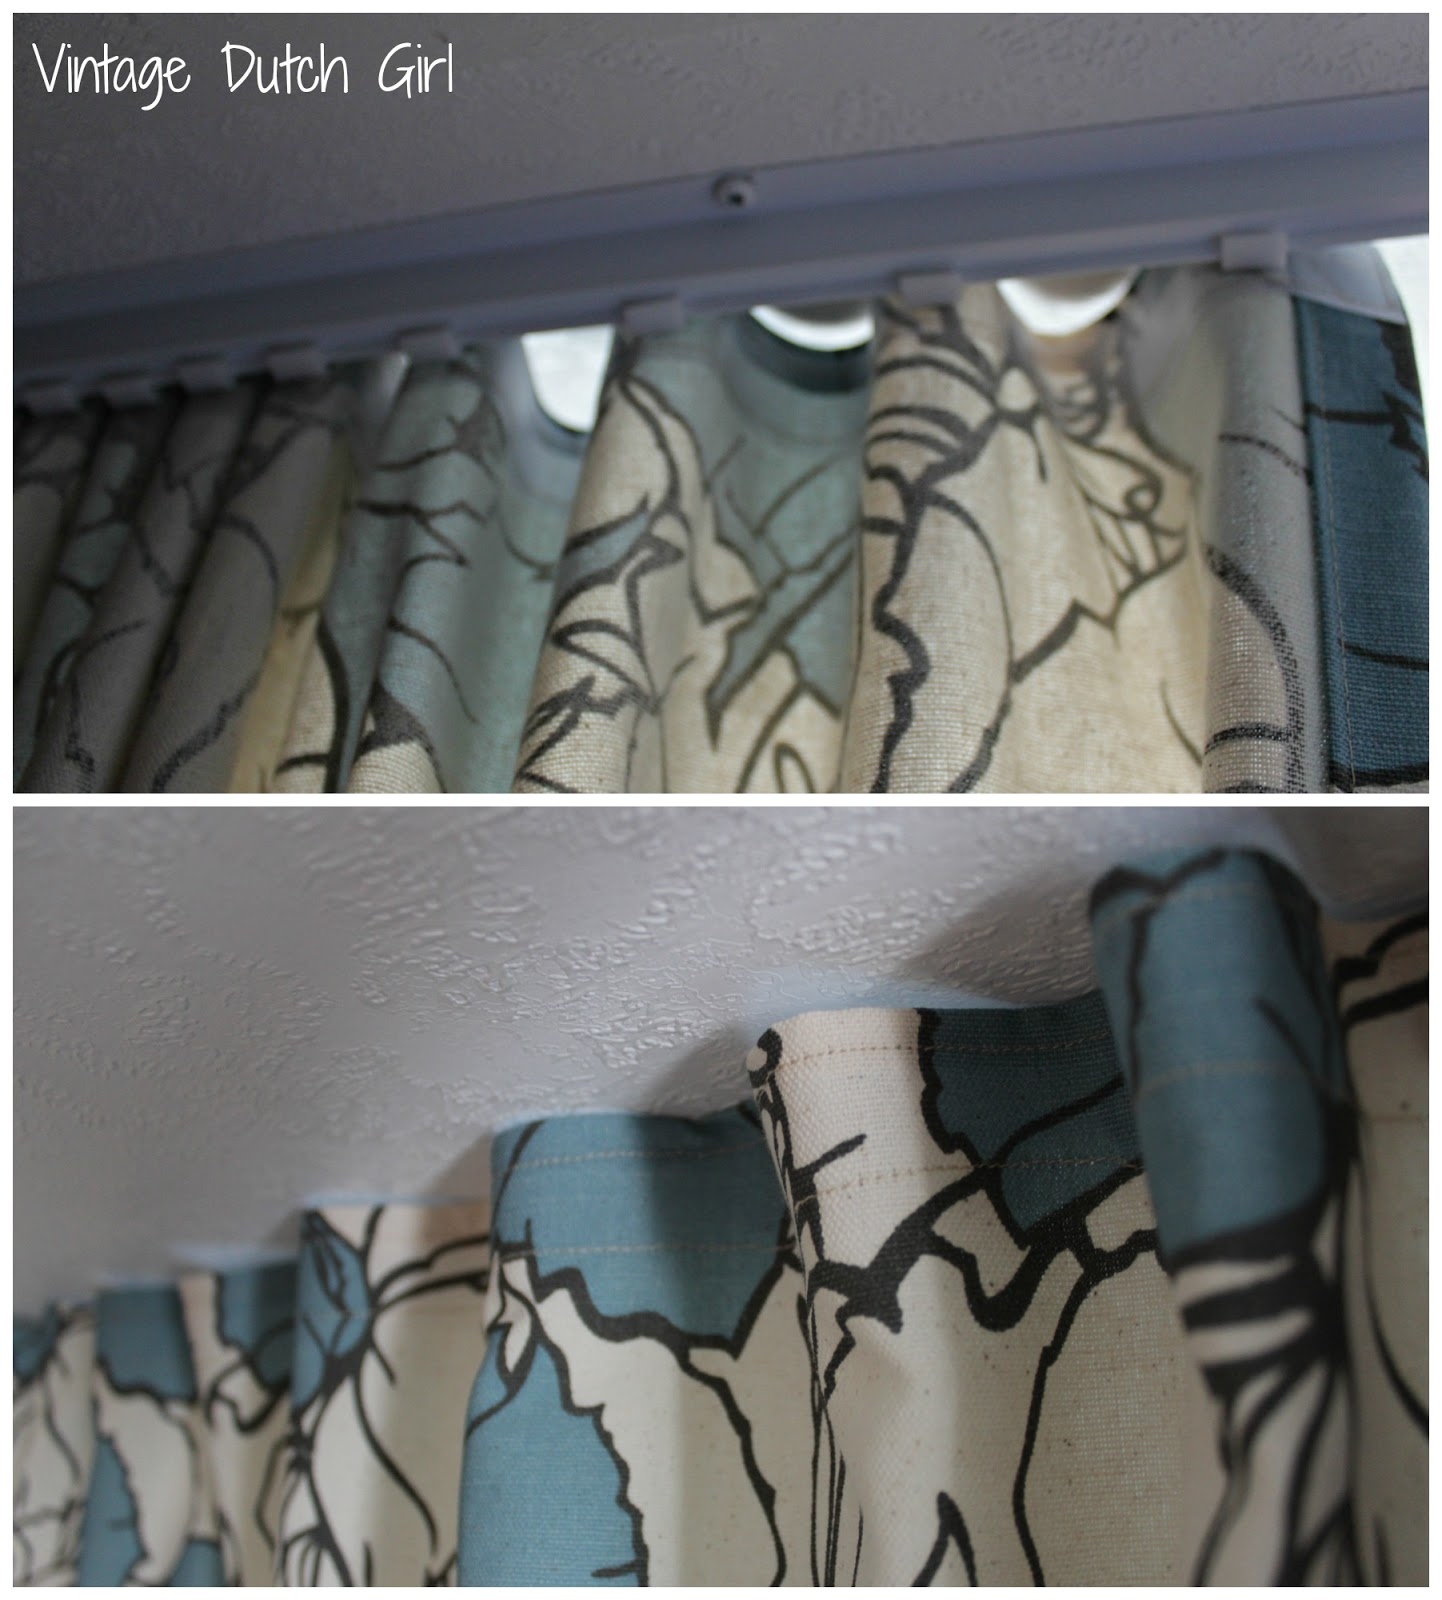 Privacy Curtain For Bedroom Vintage Dutch Girl Travel Trailer Makeover Part 8 Master